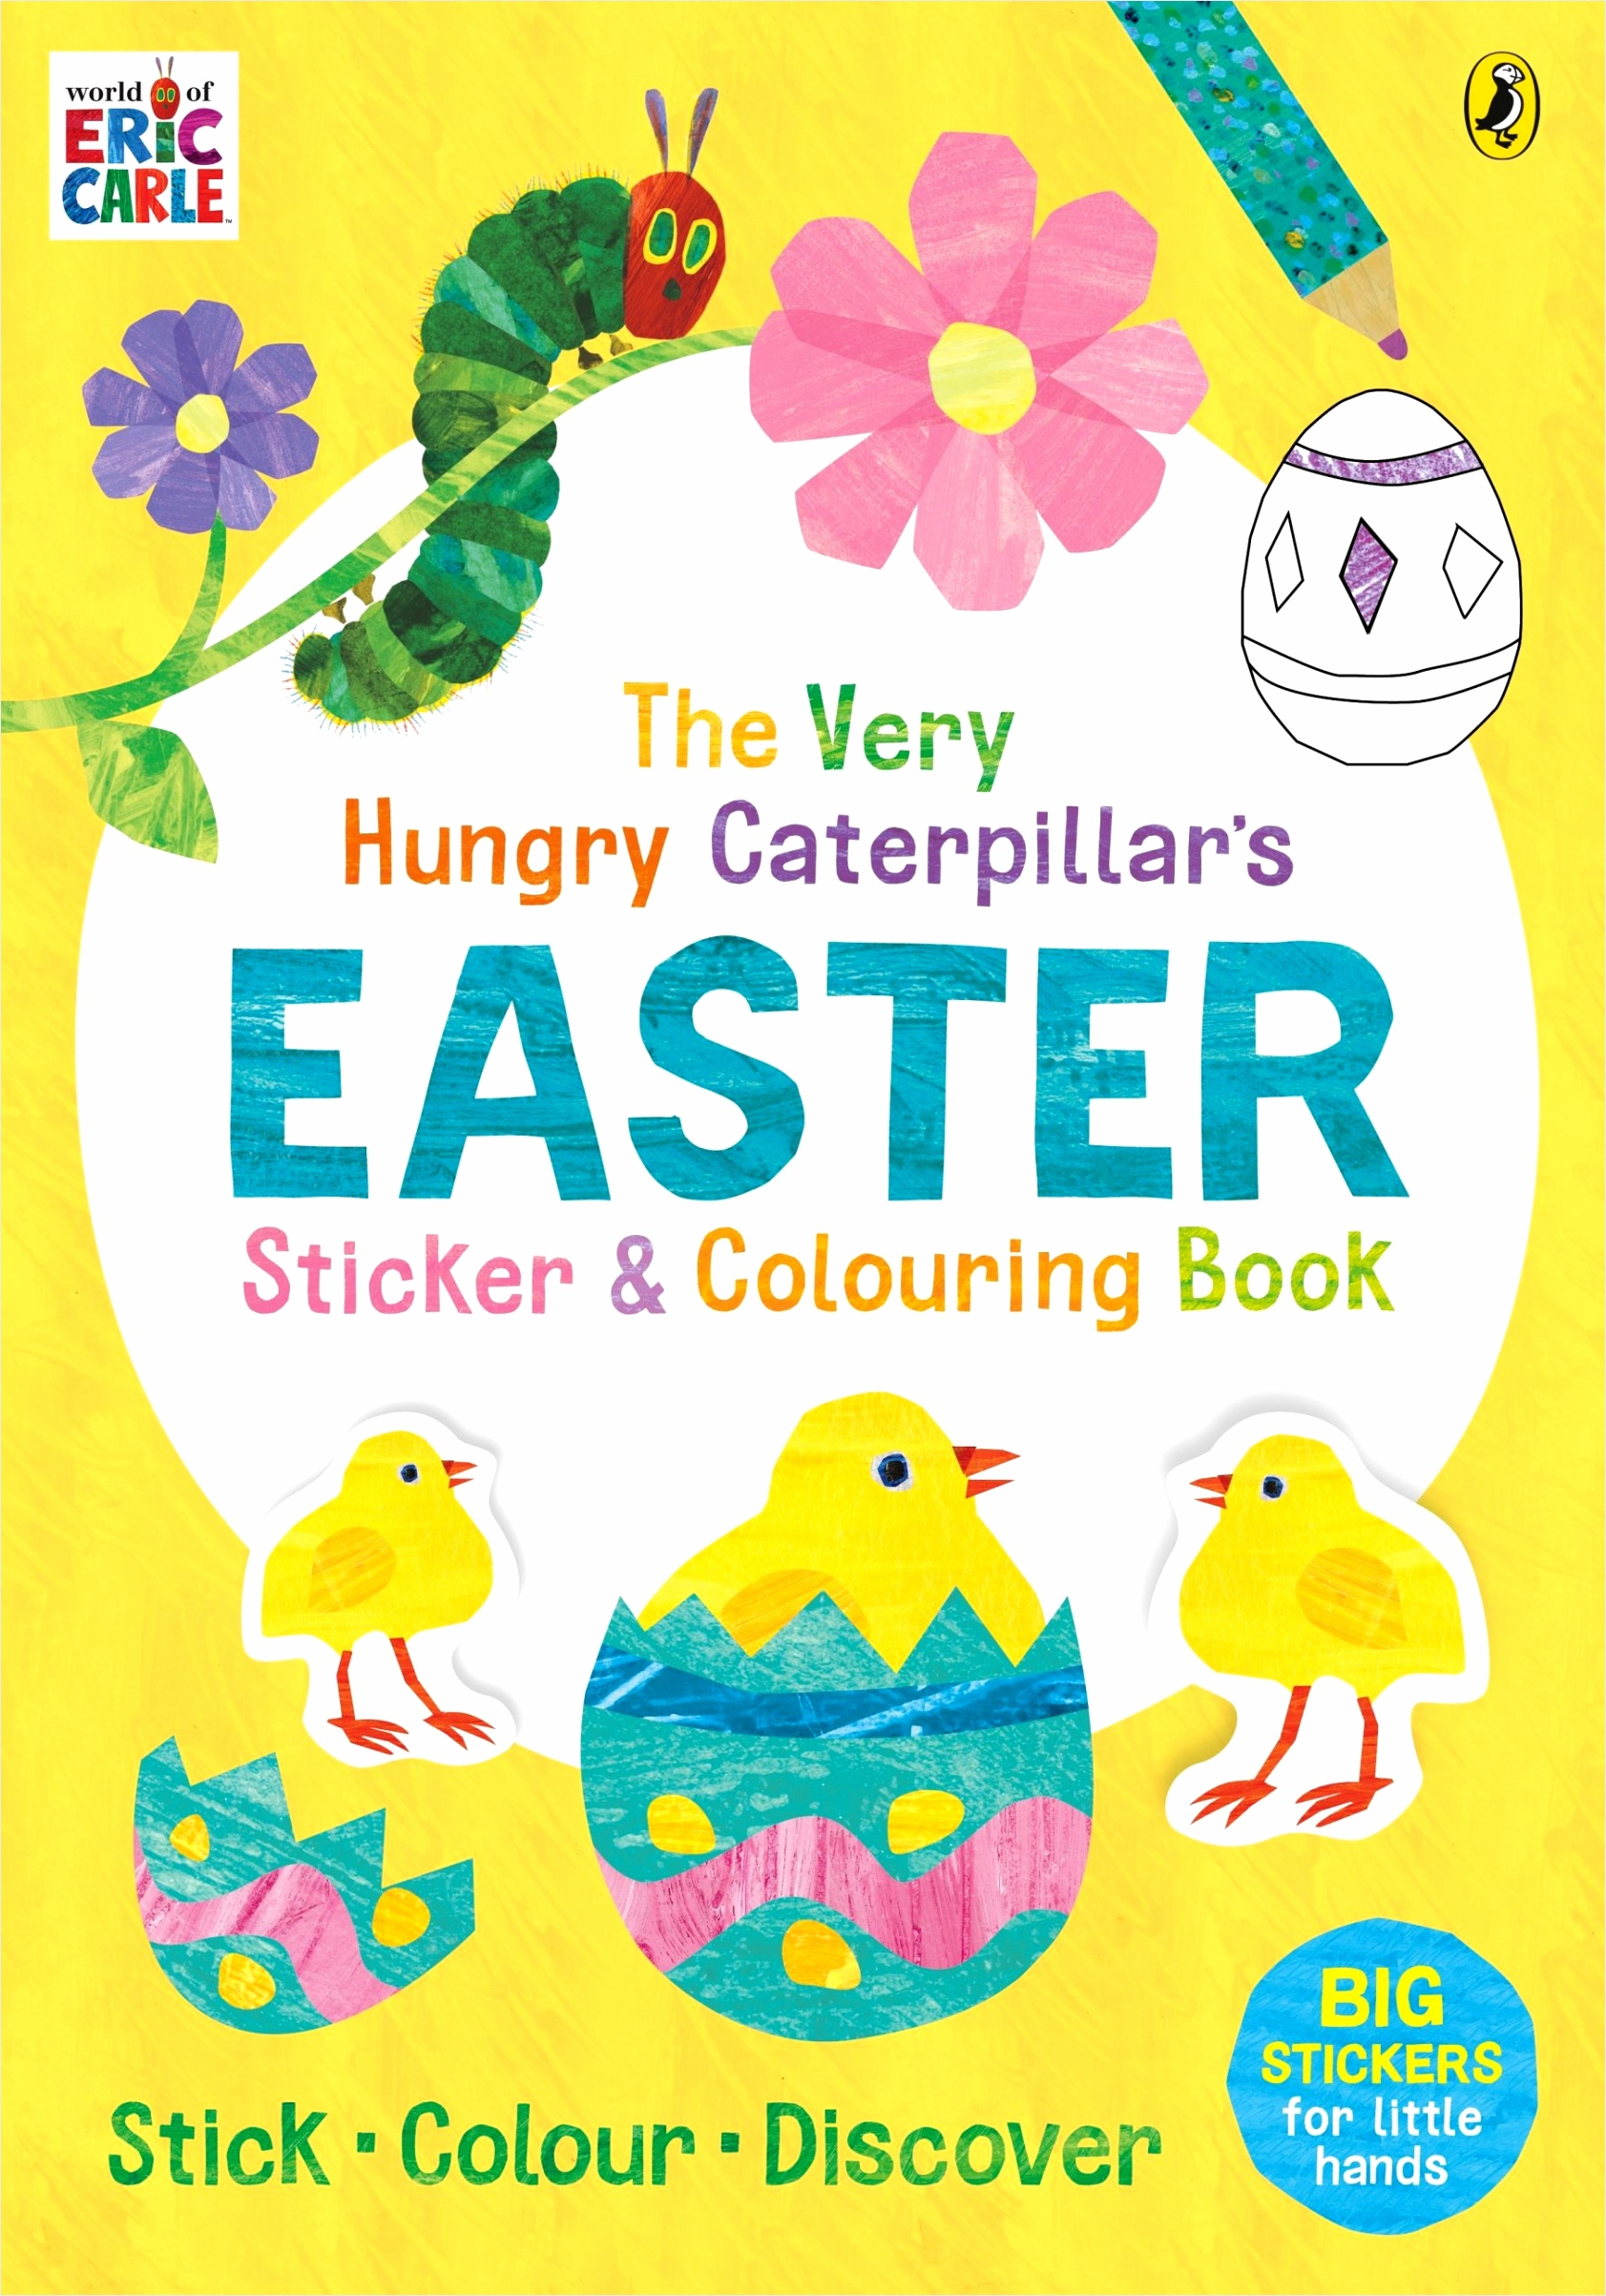 the very hungryterpillars easter sticker and colouring book byterpillar coloring pages for kids free printable scaled iaeaa